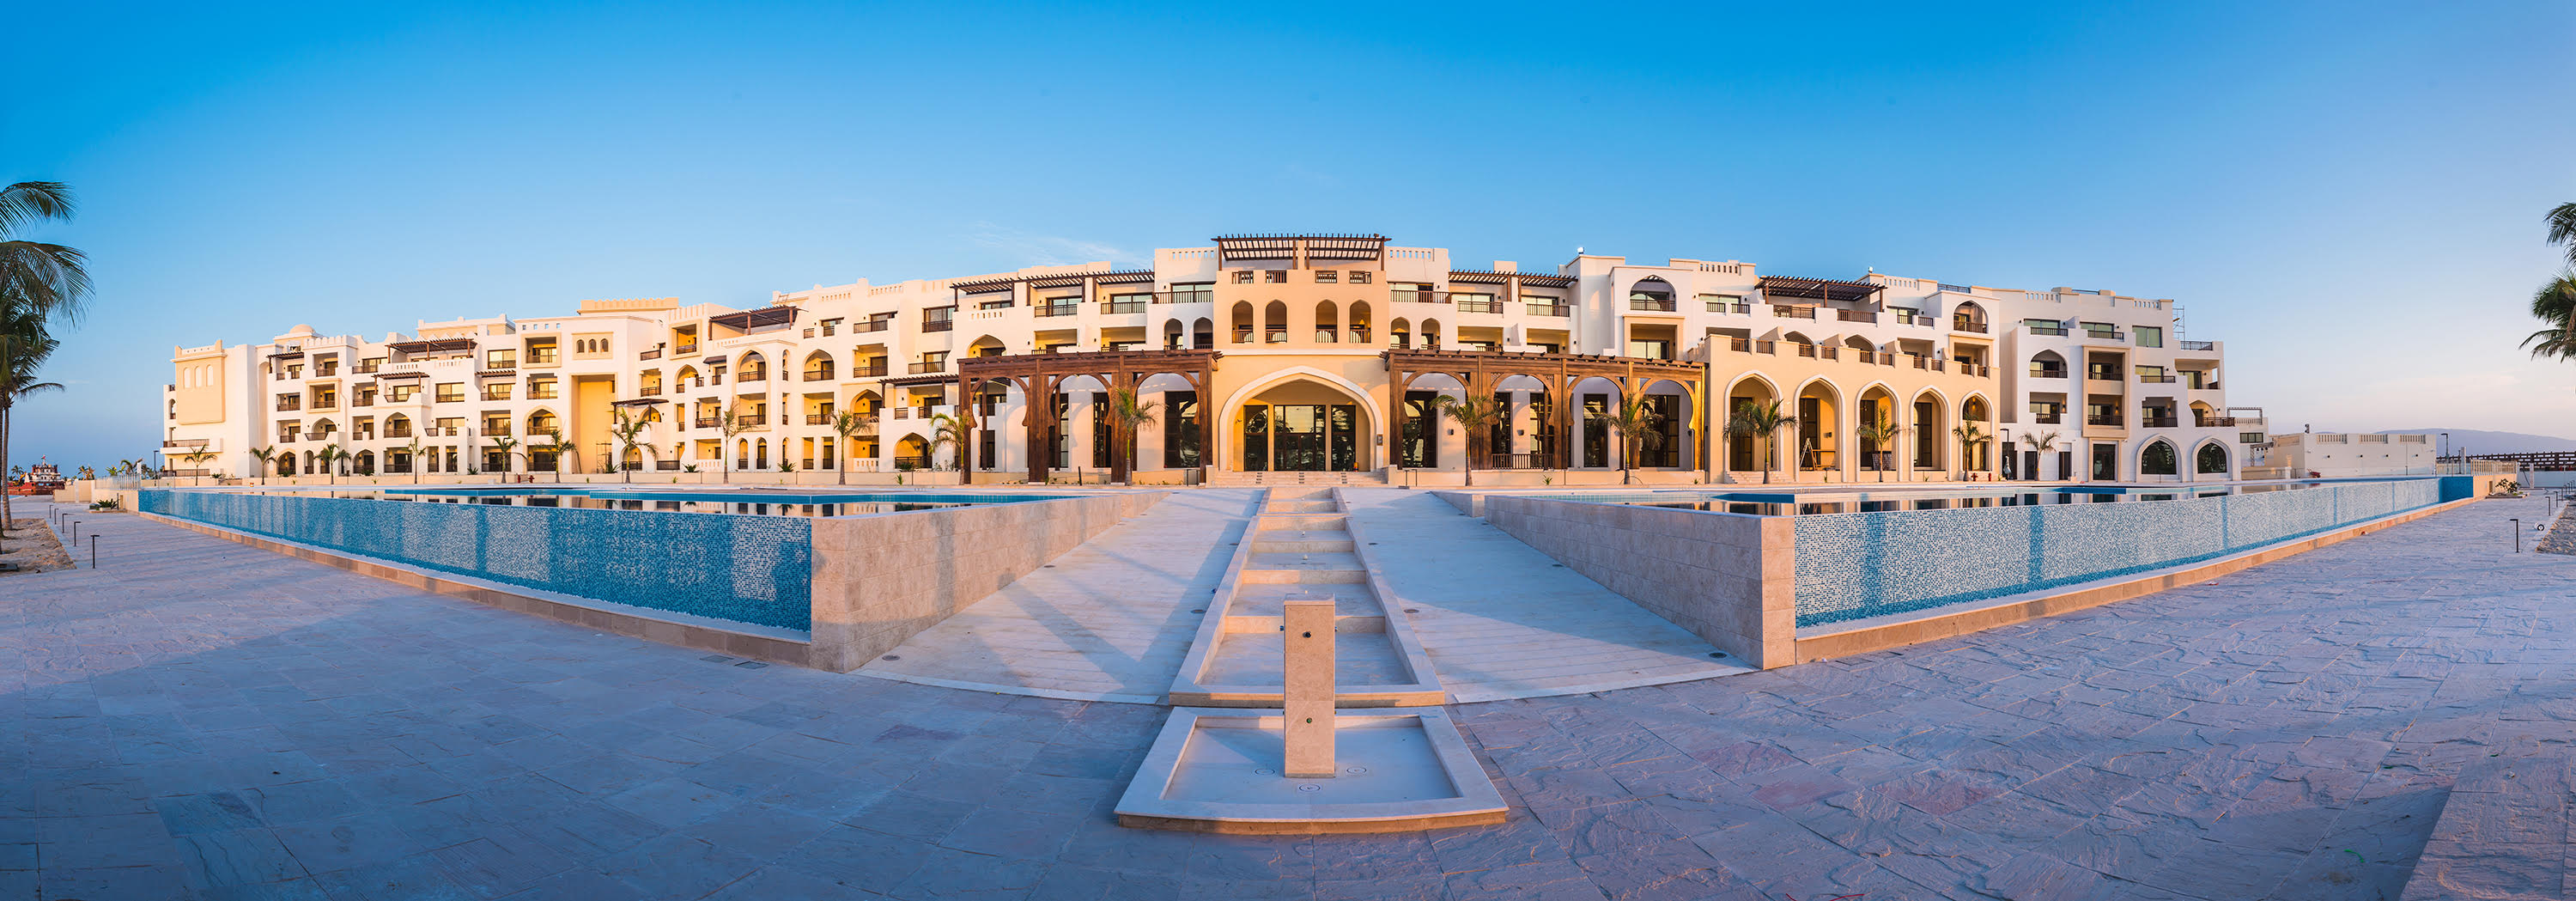 Fanar Hotel And Residences Salalah Beach